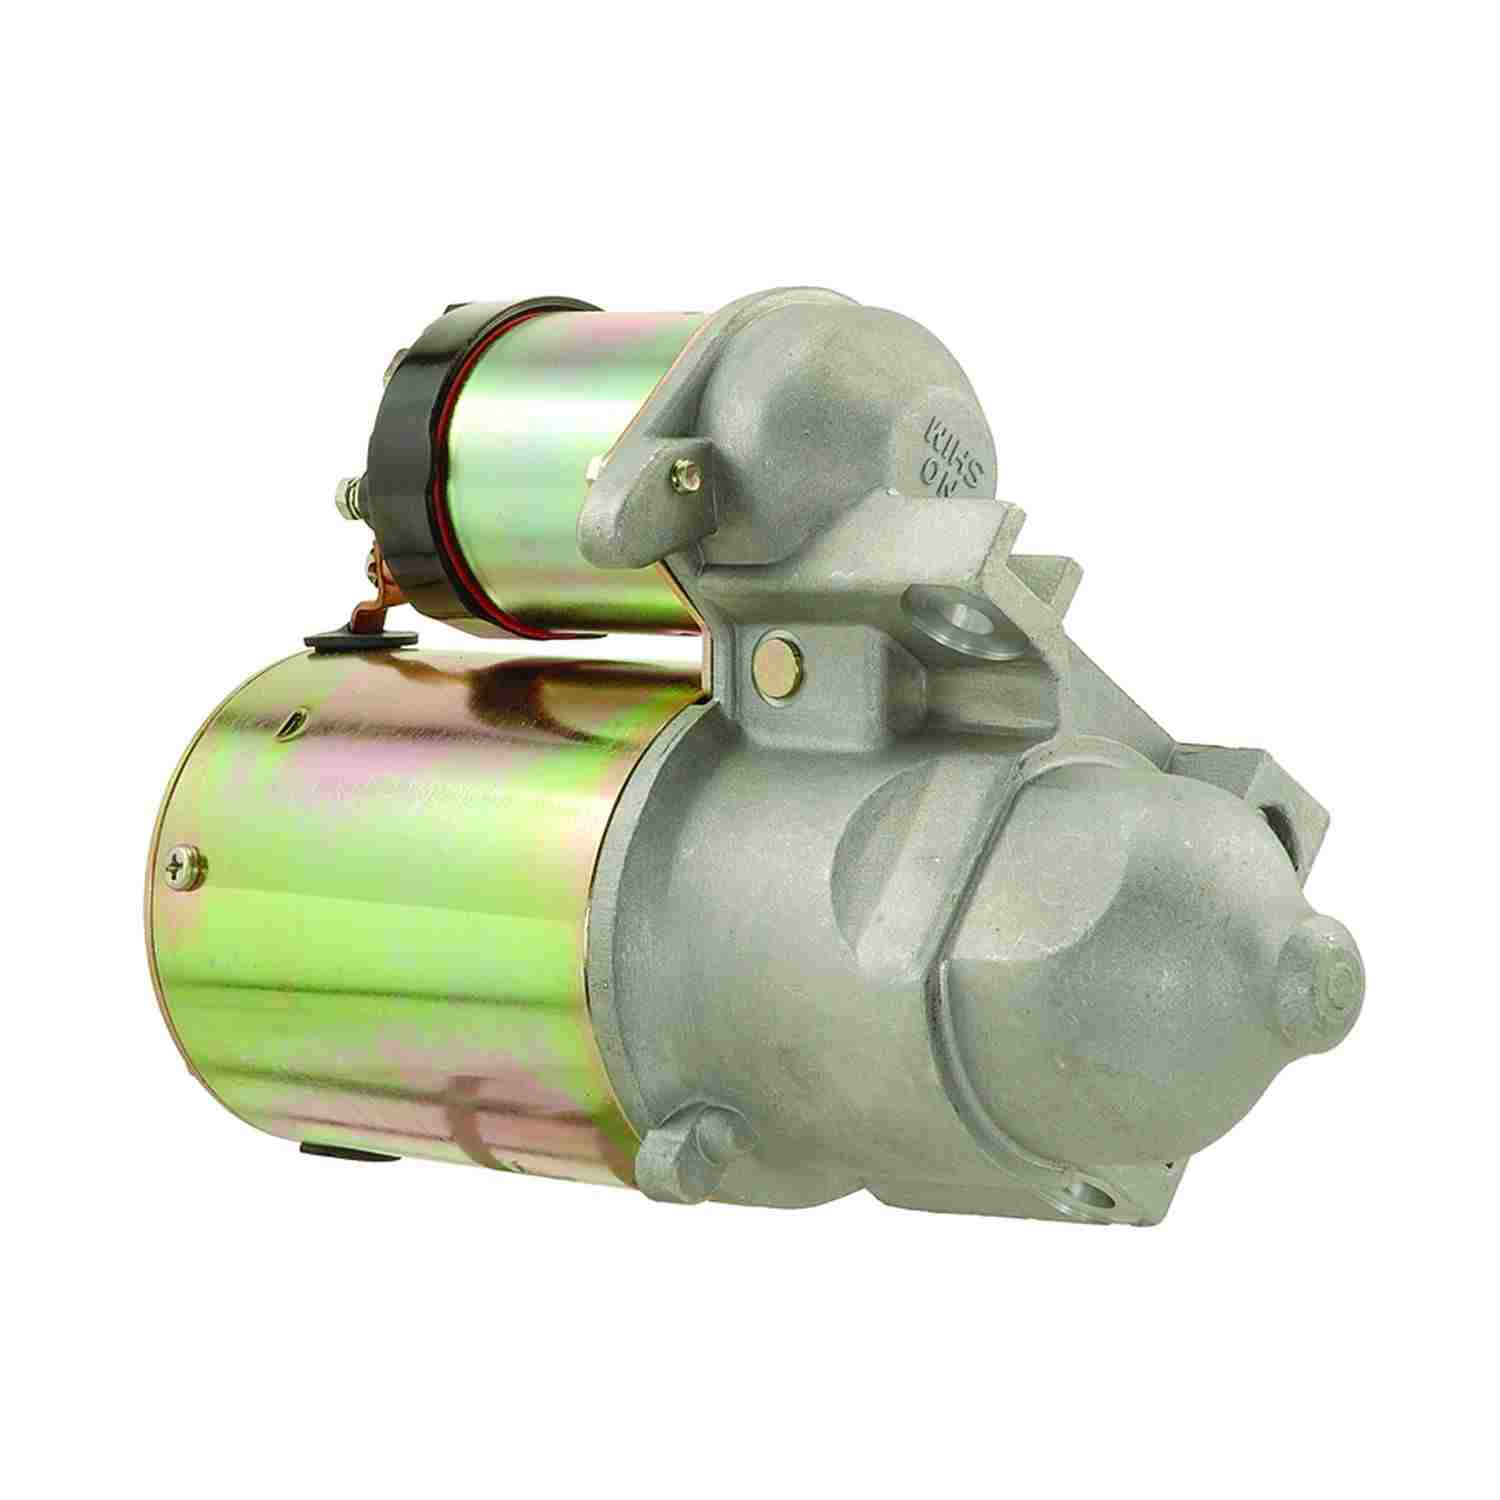 ACDELCO GOLD/PROFESSIONAL - Starter Motor - DCC 337-1009